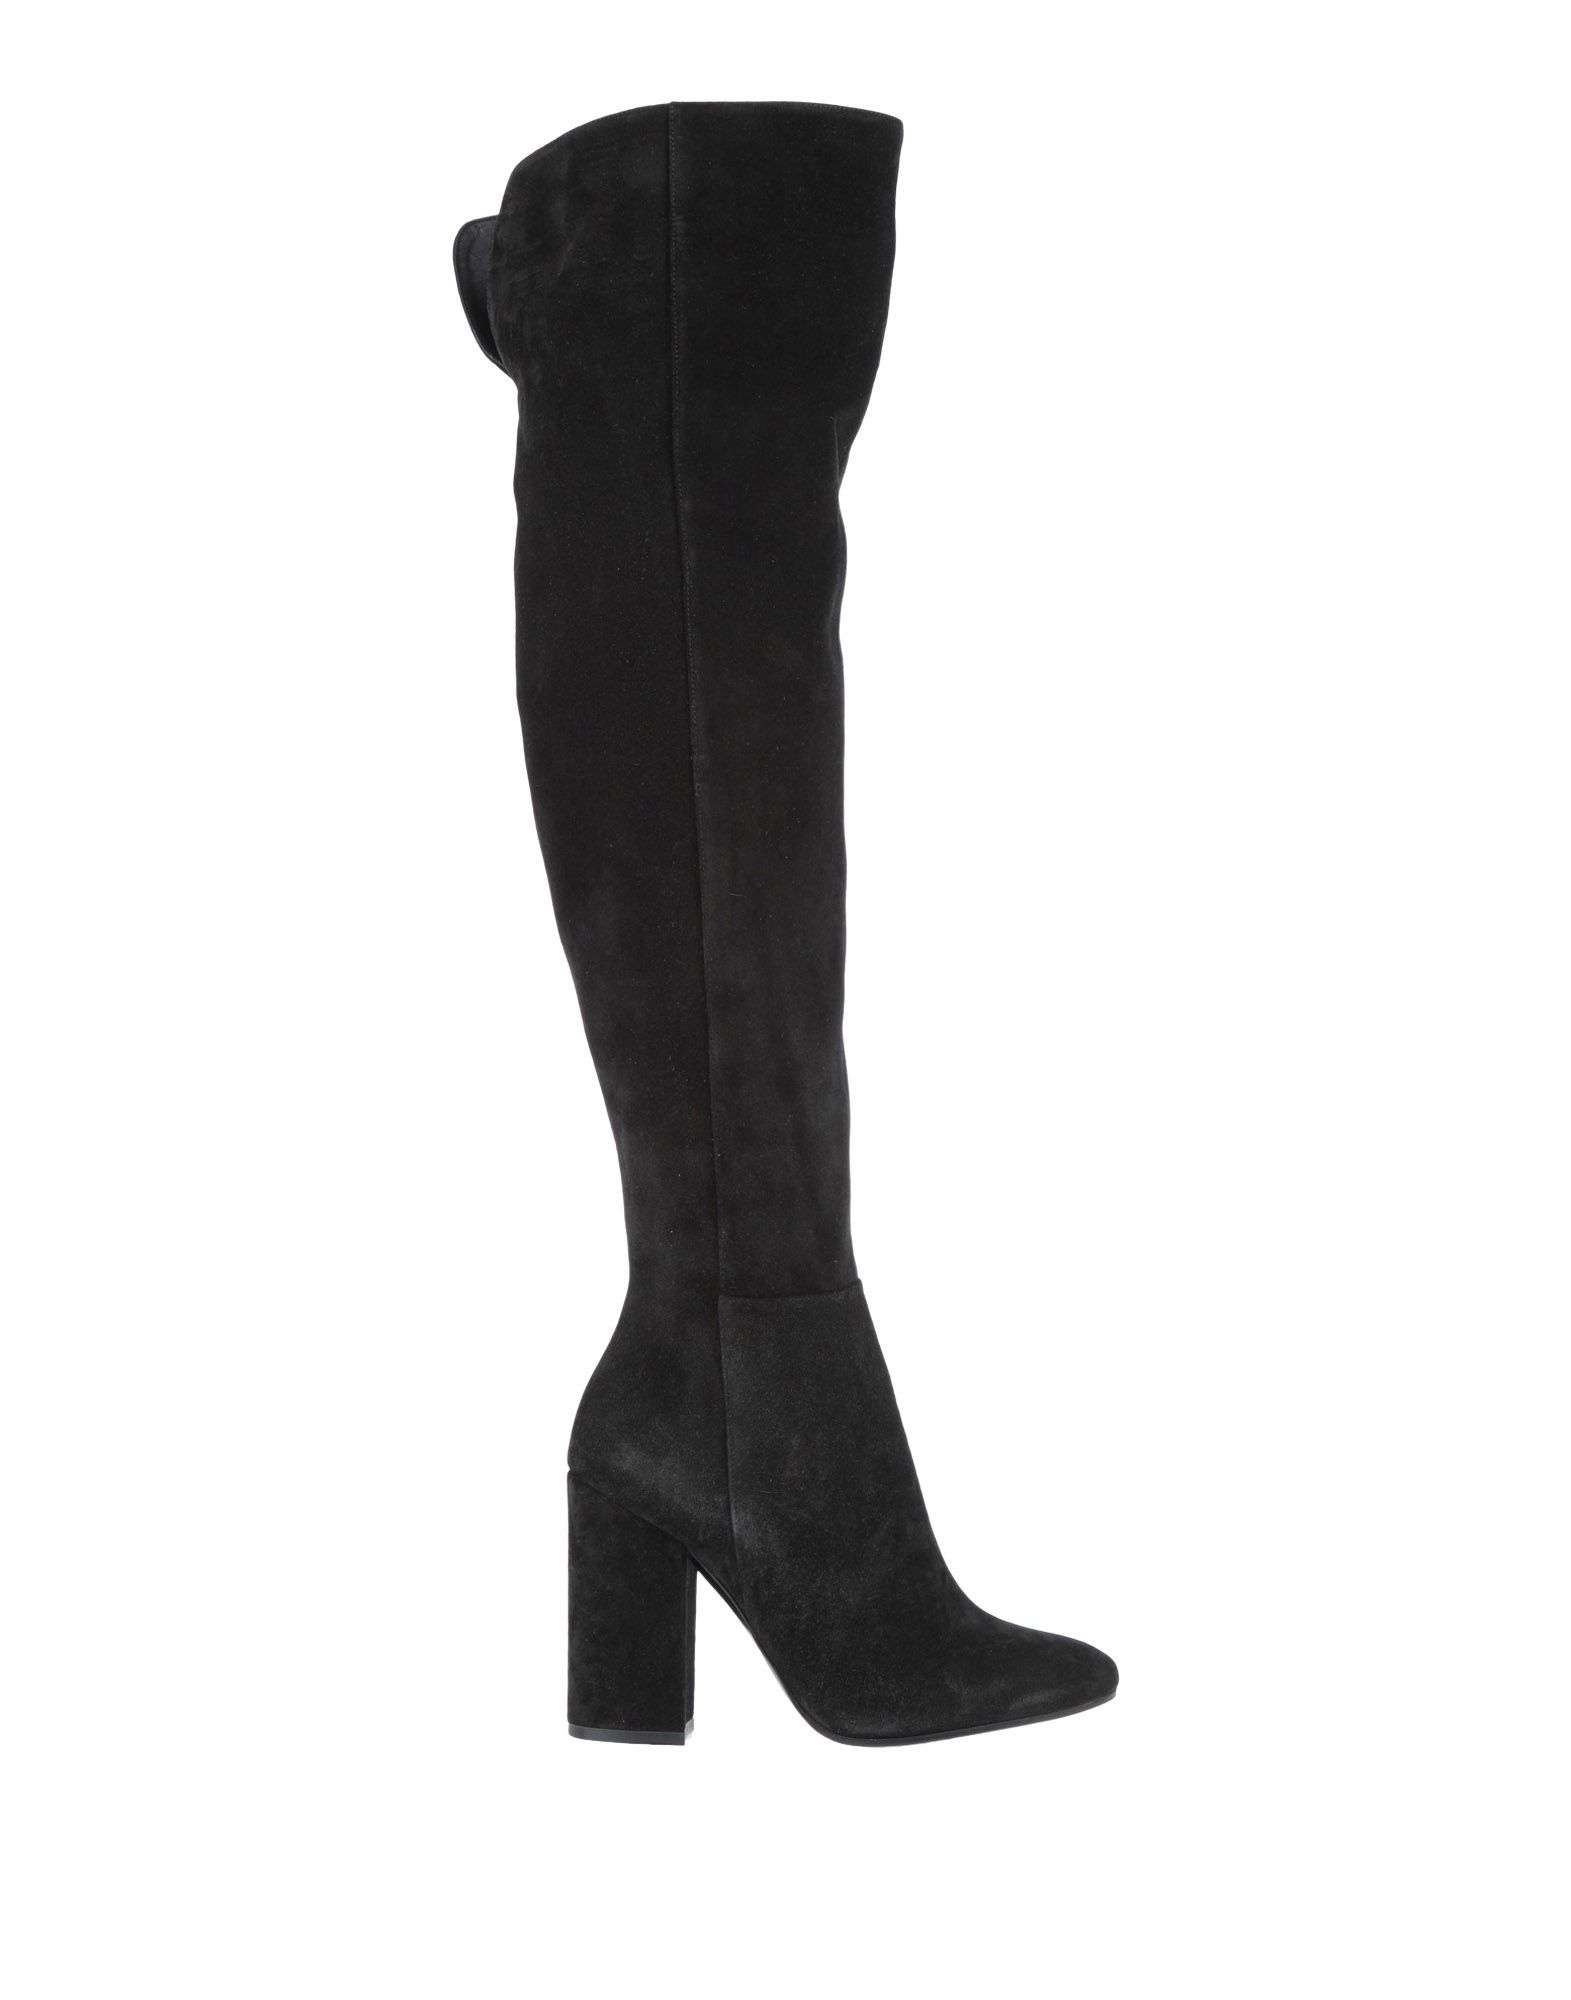 LERRE Boots in Black